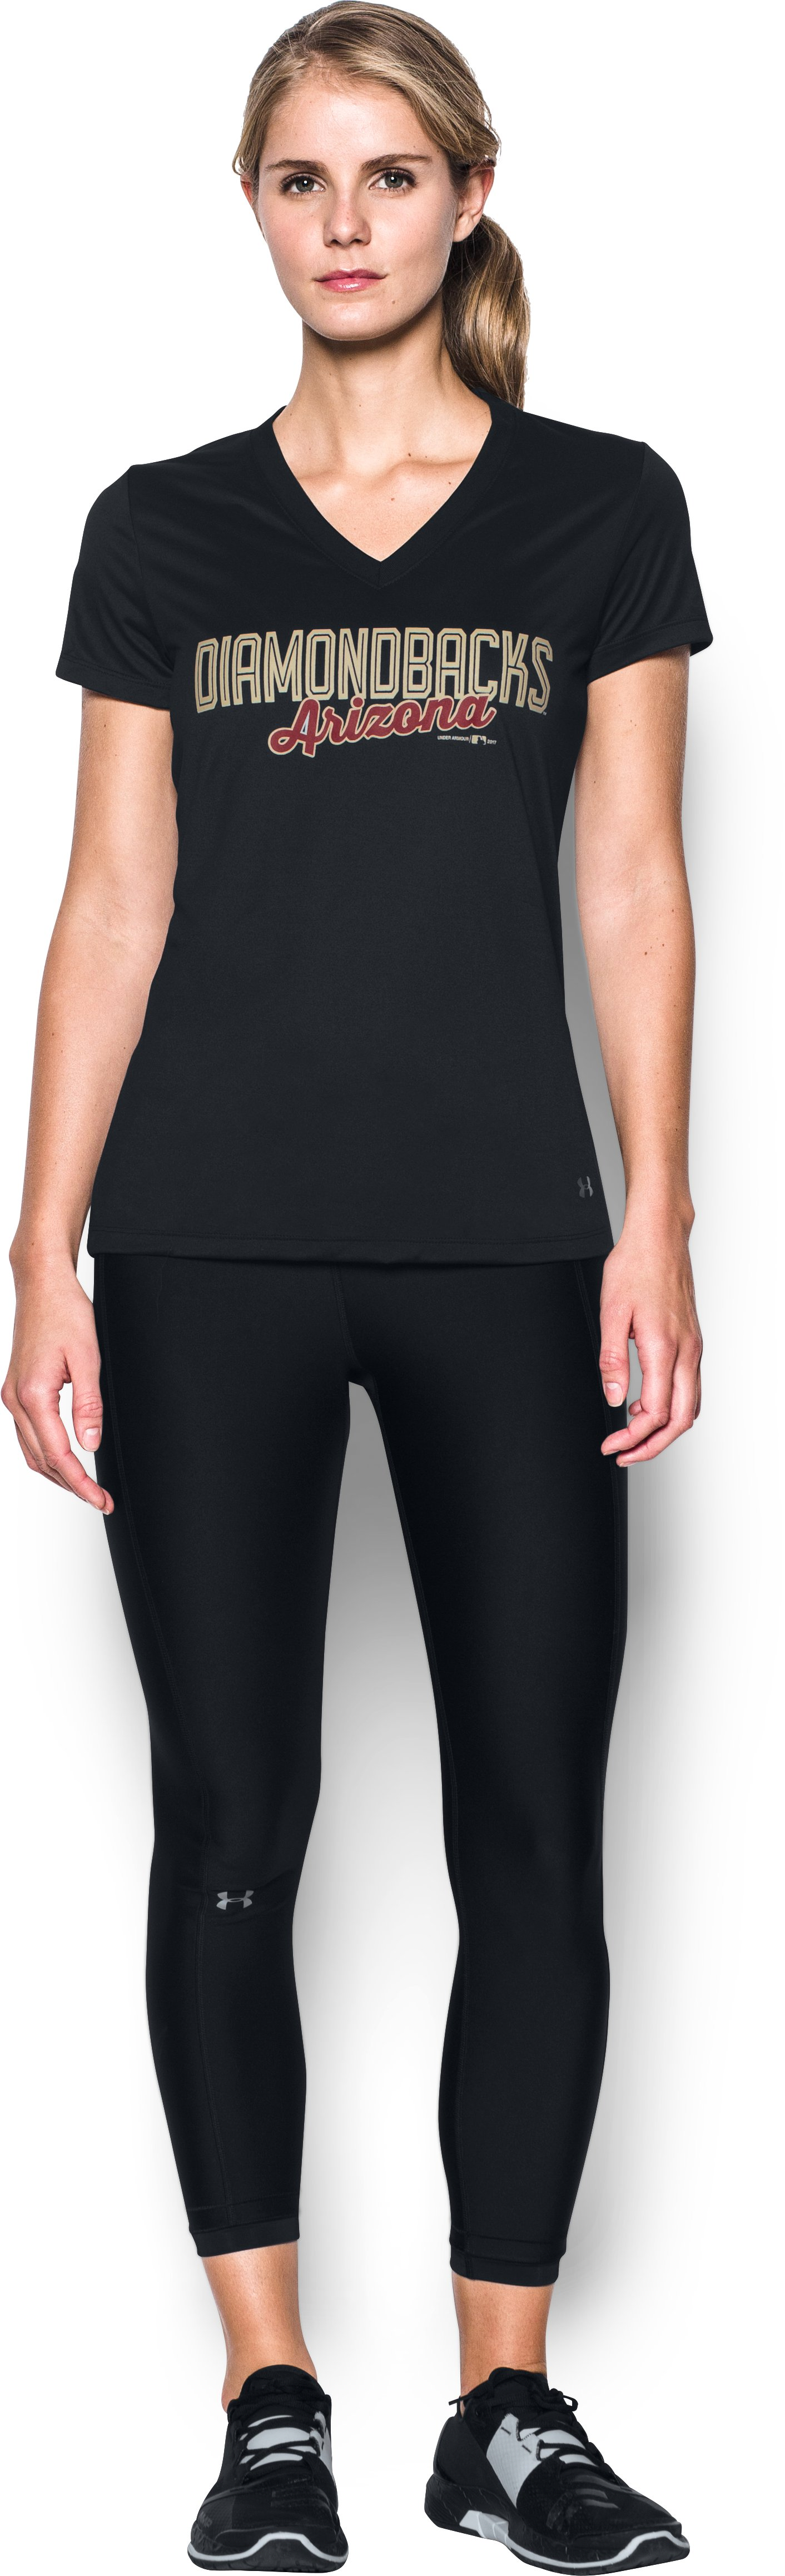 Women's Arizona Diamondbacks UA Tech™ V-Neck T-Shirt, Black